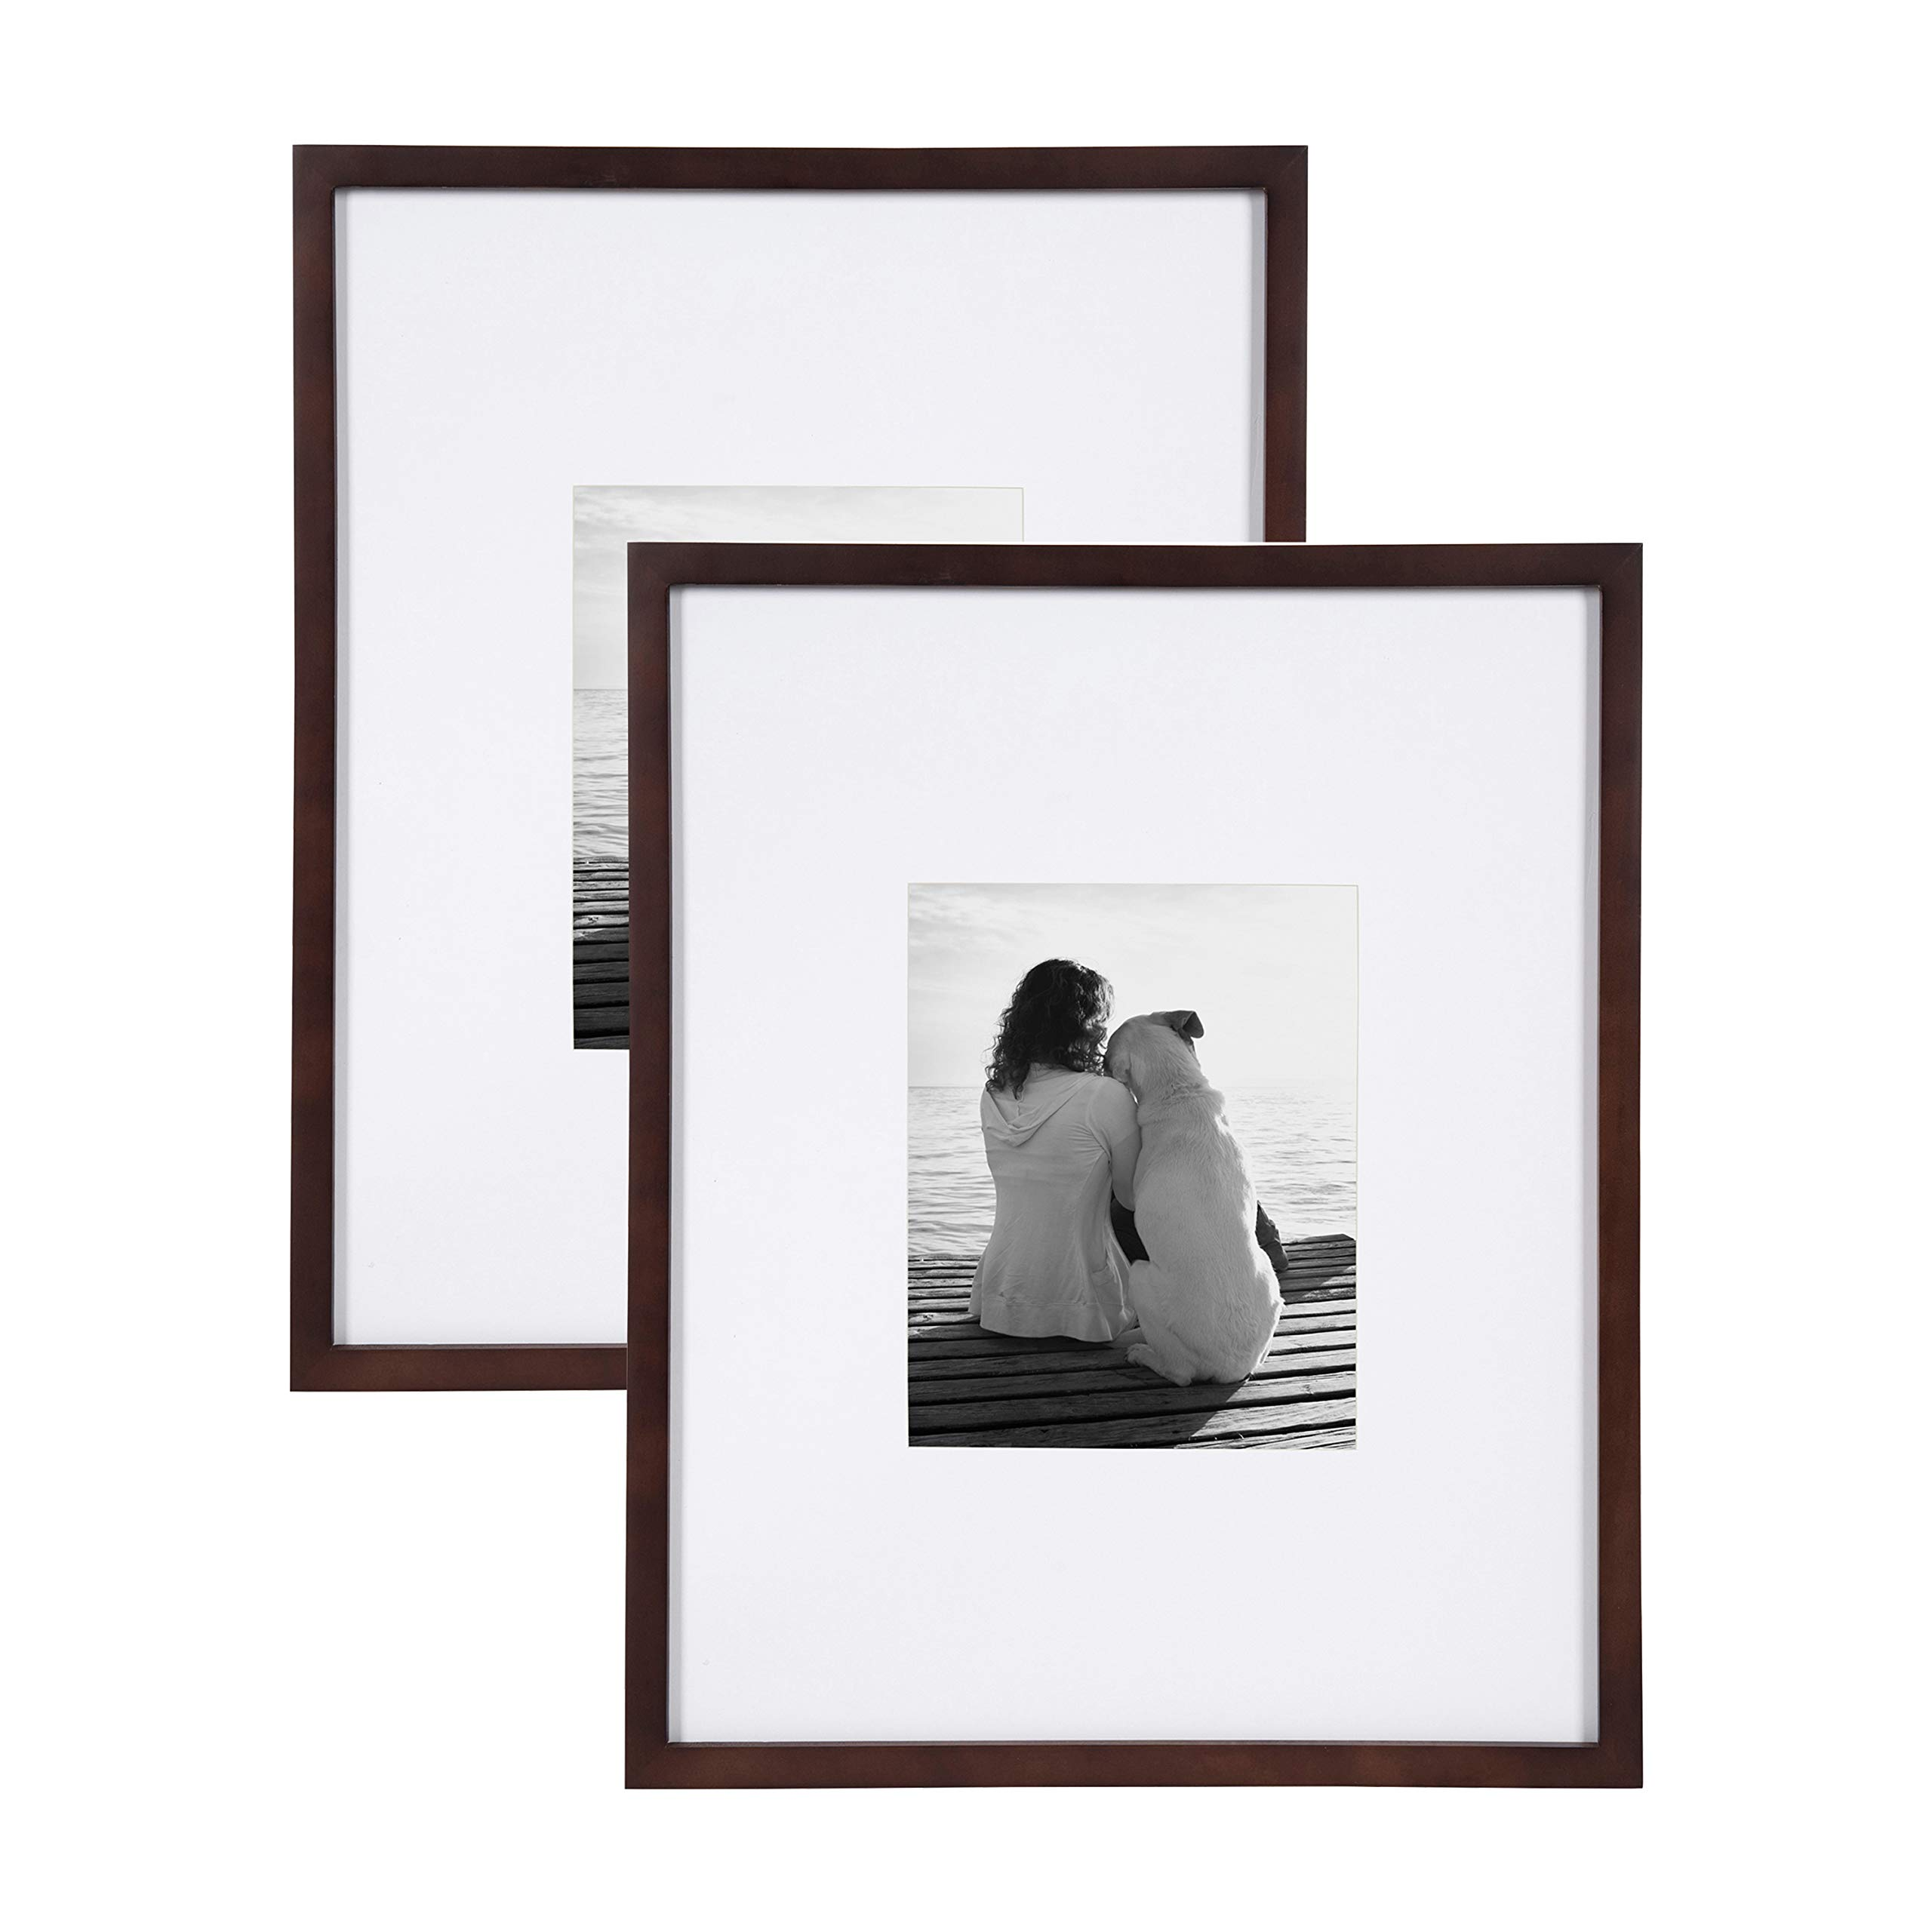 DesignOvation Gallery Wood Photo Frame Set for Customizable Wall Display, Pack of 2 16x20 matted to 8x10 Walnut Brown by DesignOvation